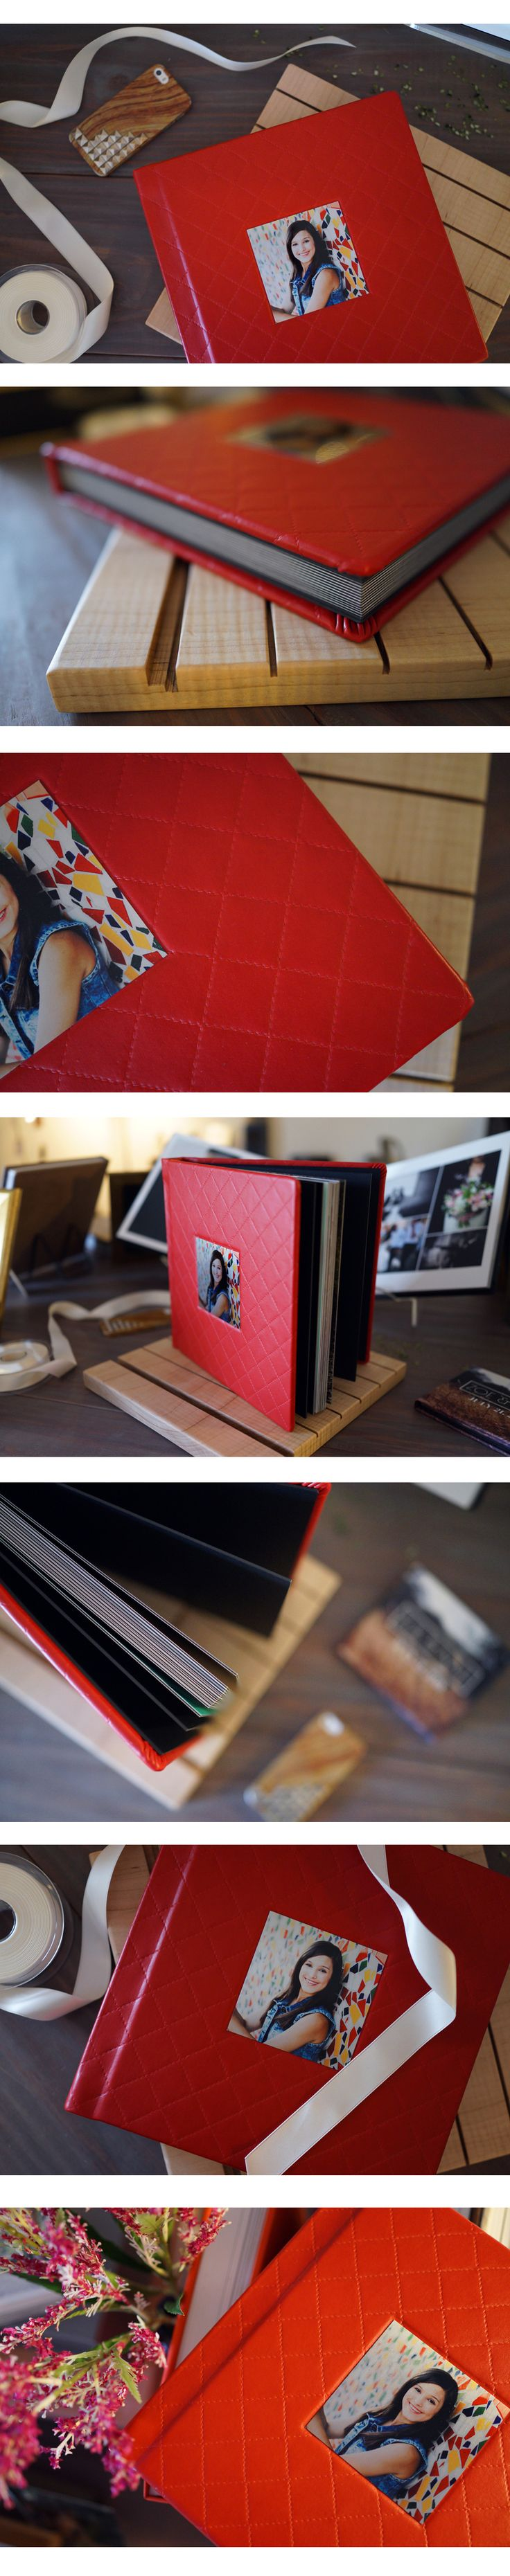 We absolutely love how the Cherry Pie Leather goes so amazingly with the cameo image on this album! Cameo image by Chantal Brown Photography